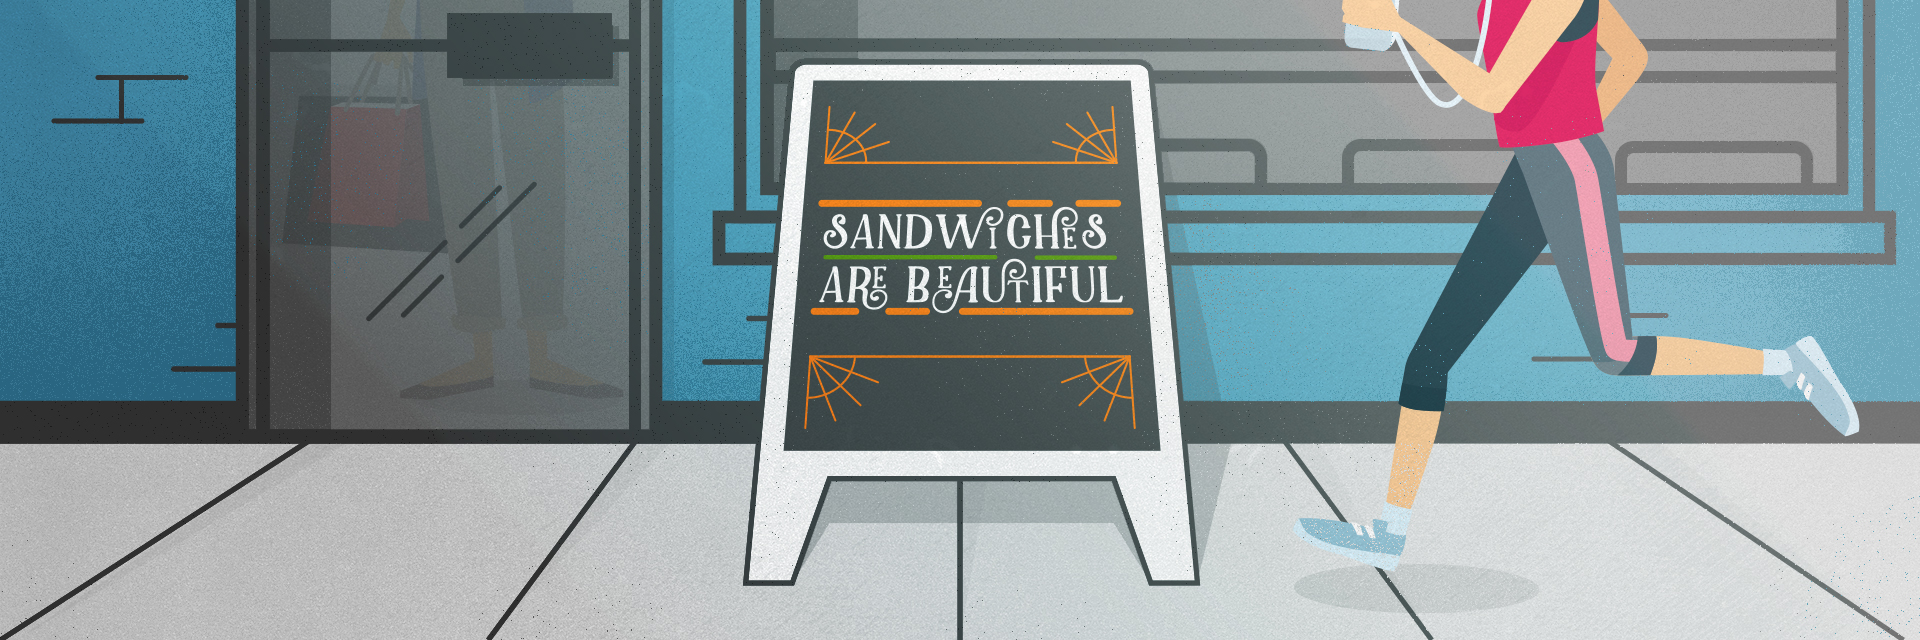 Sandwich (boards) are Beautiful